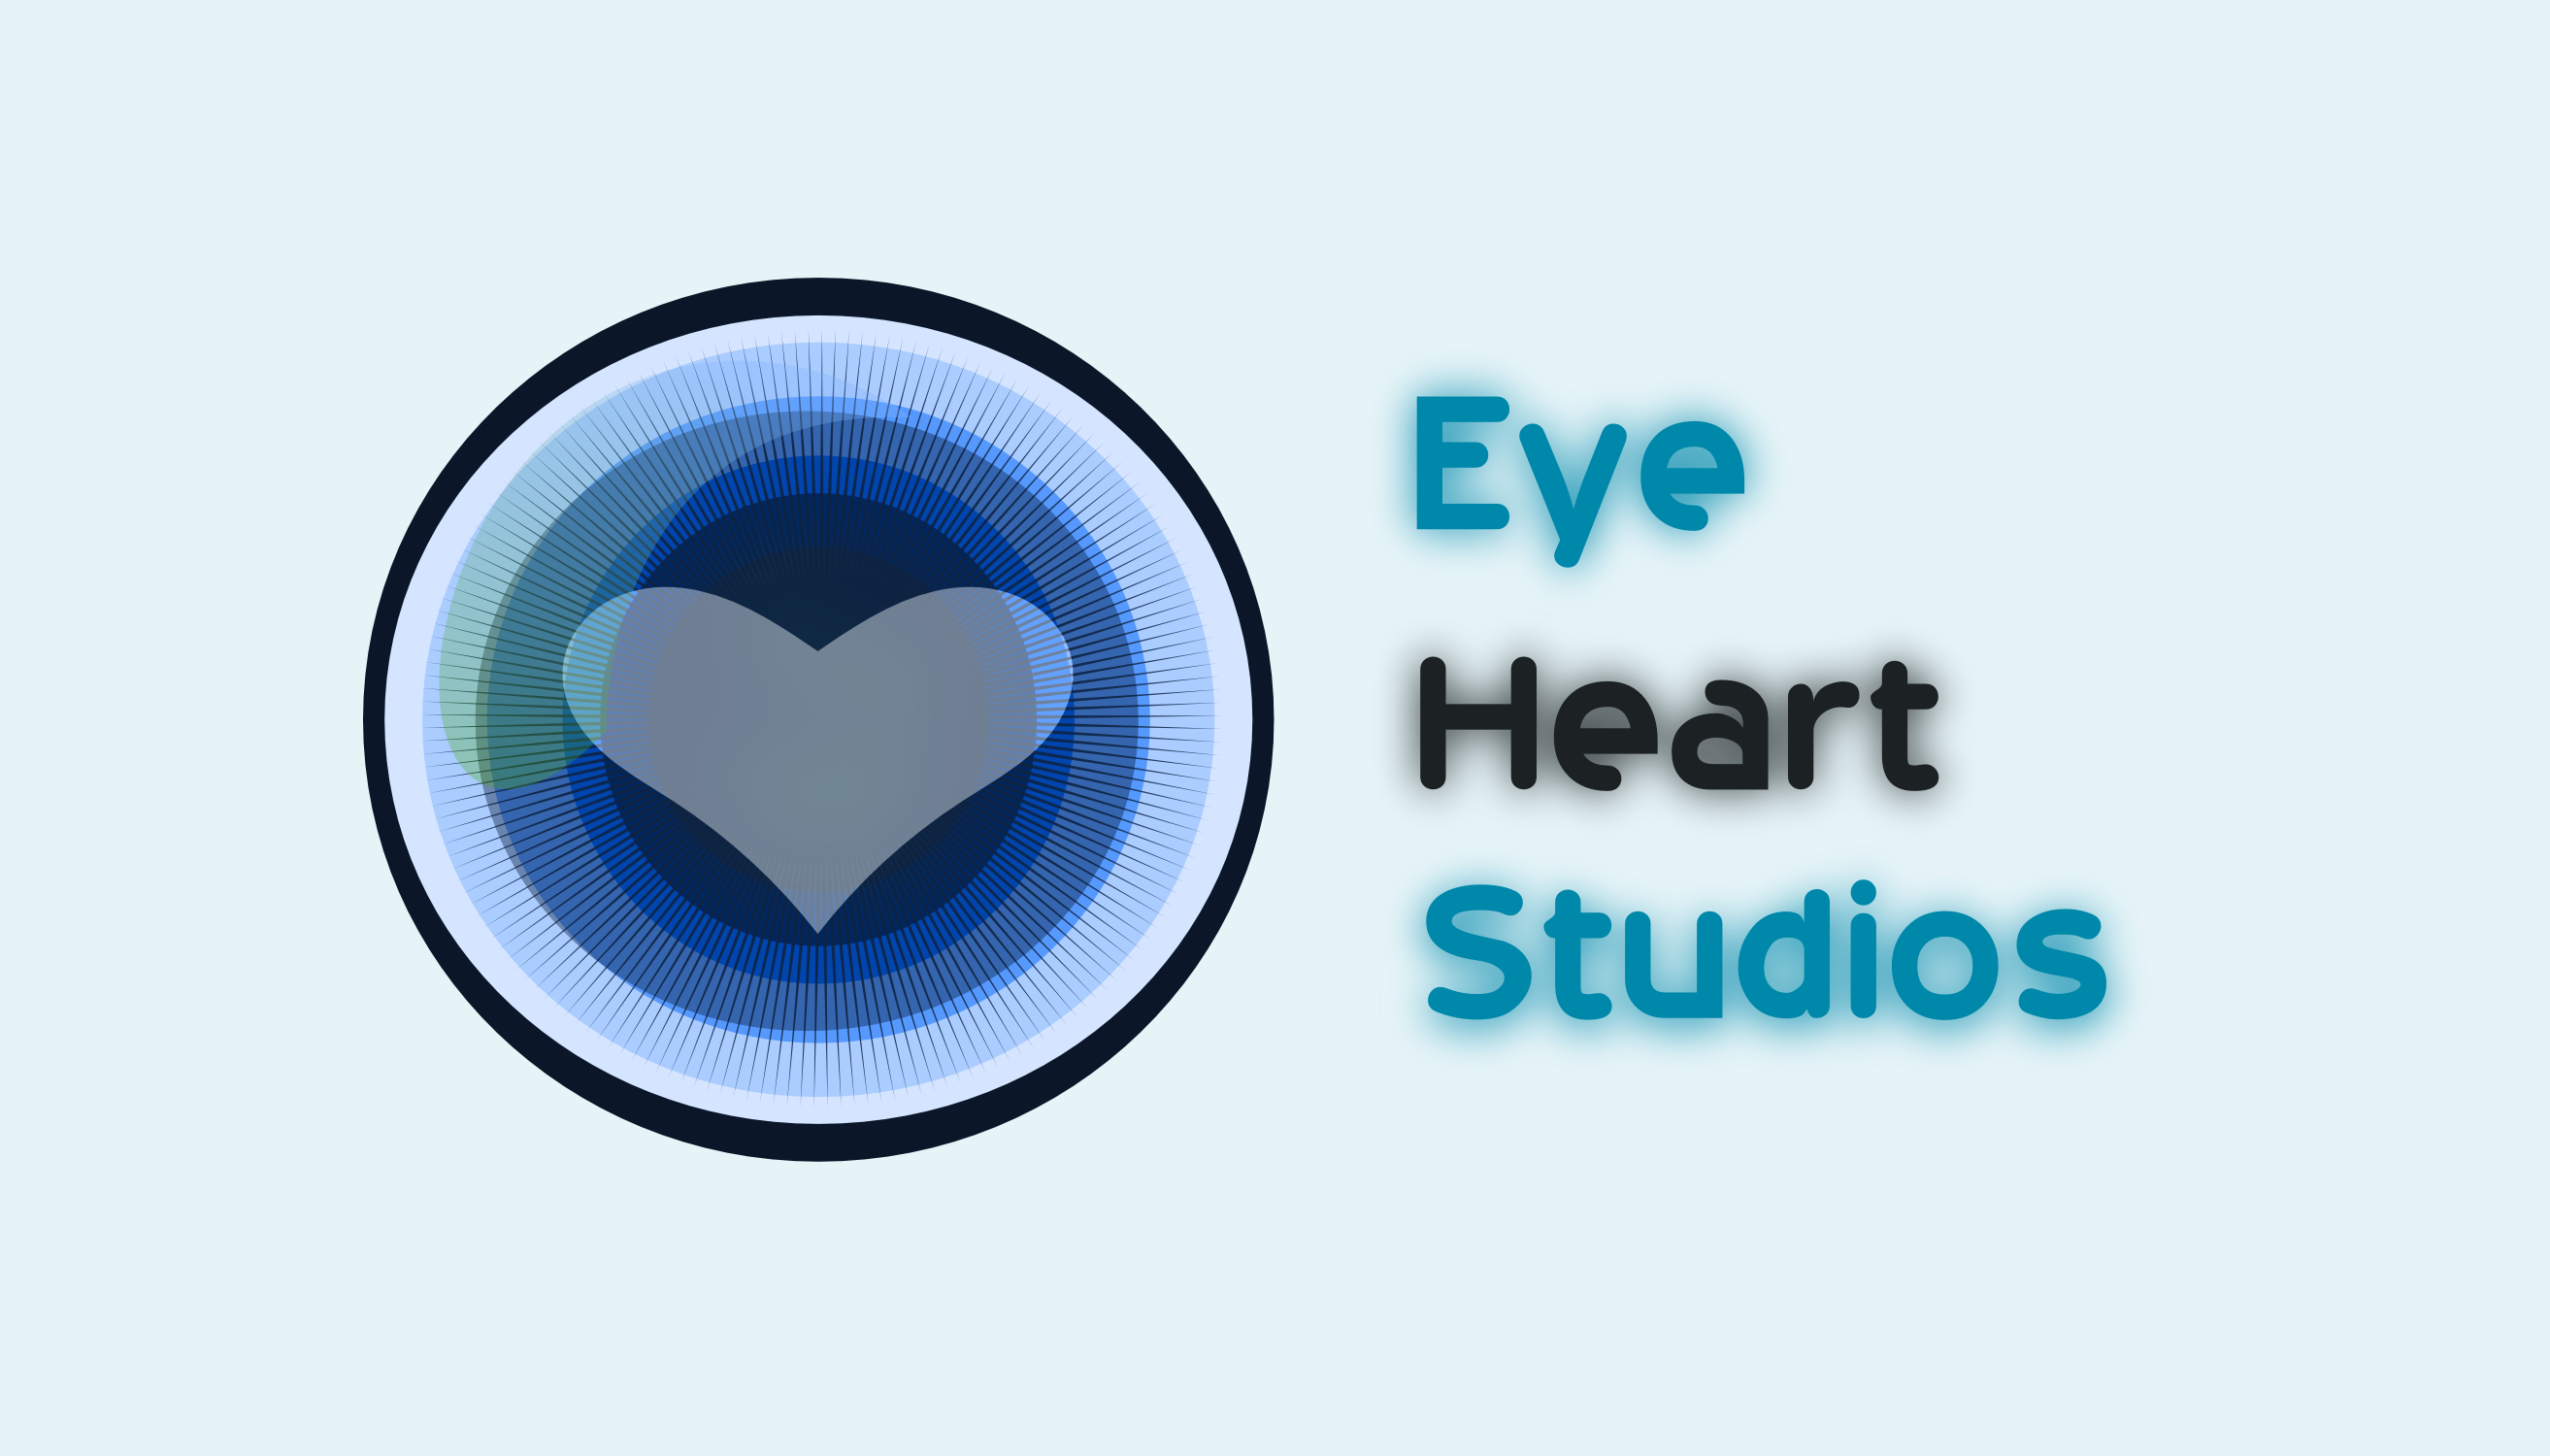 Logo Design by Arindam Khanda - Entry No. 61 in the Logo Design Contest Unique Logo Design Wanted for Eye Heart Studios.